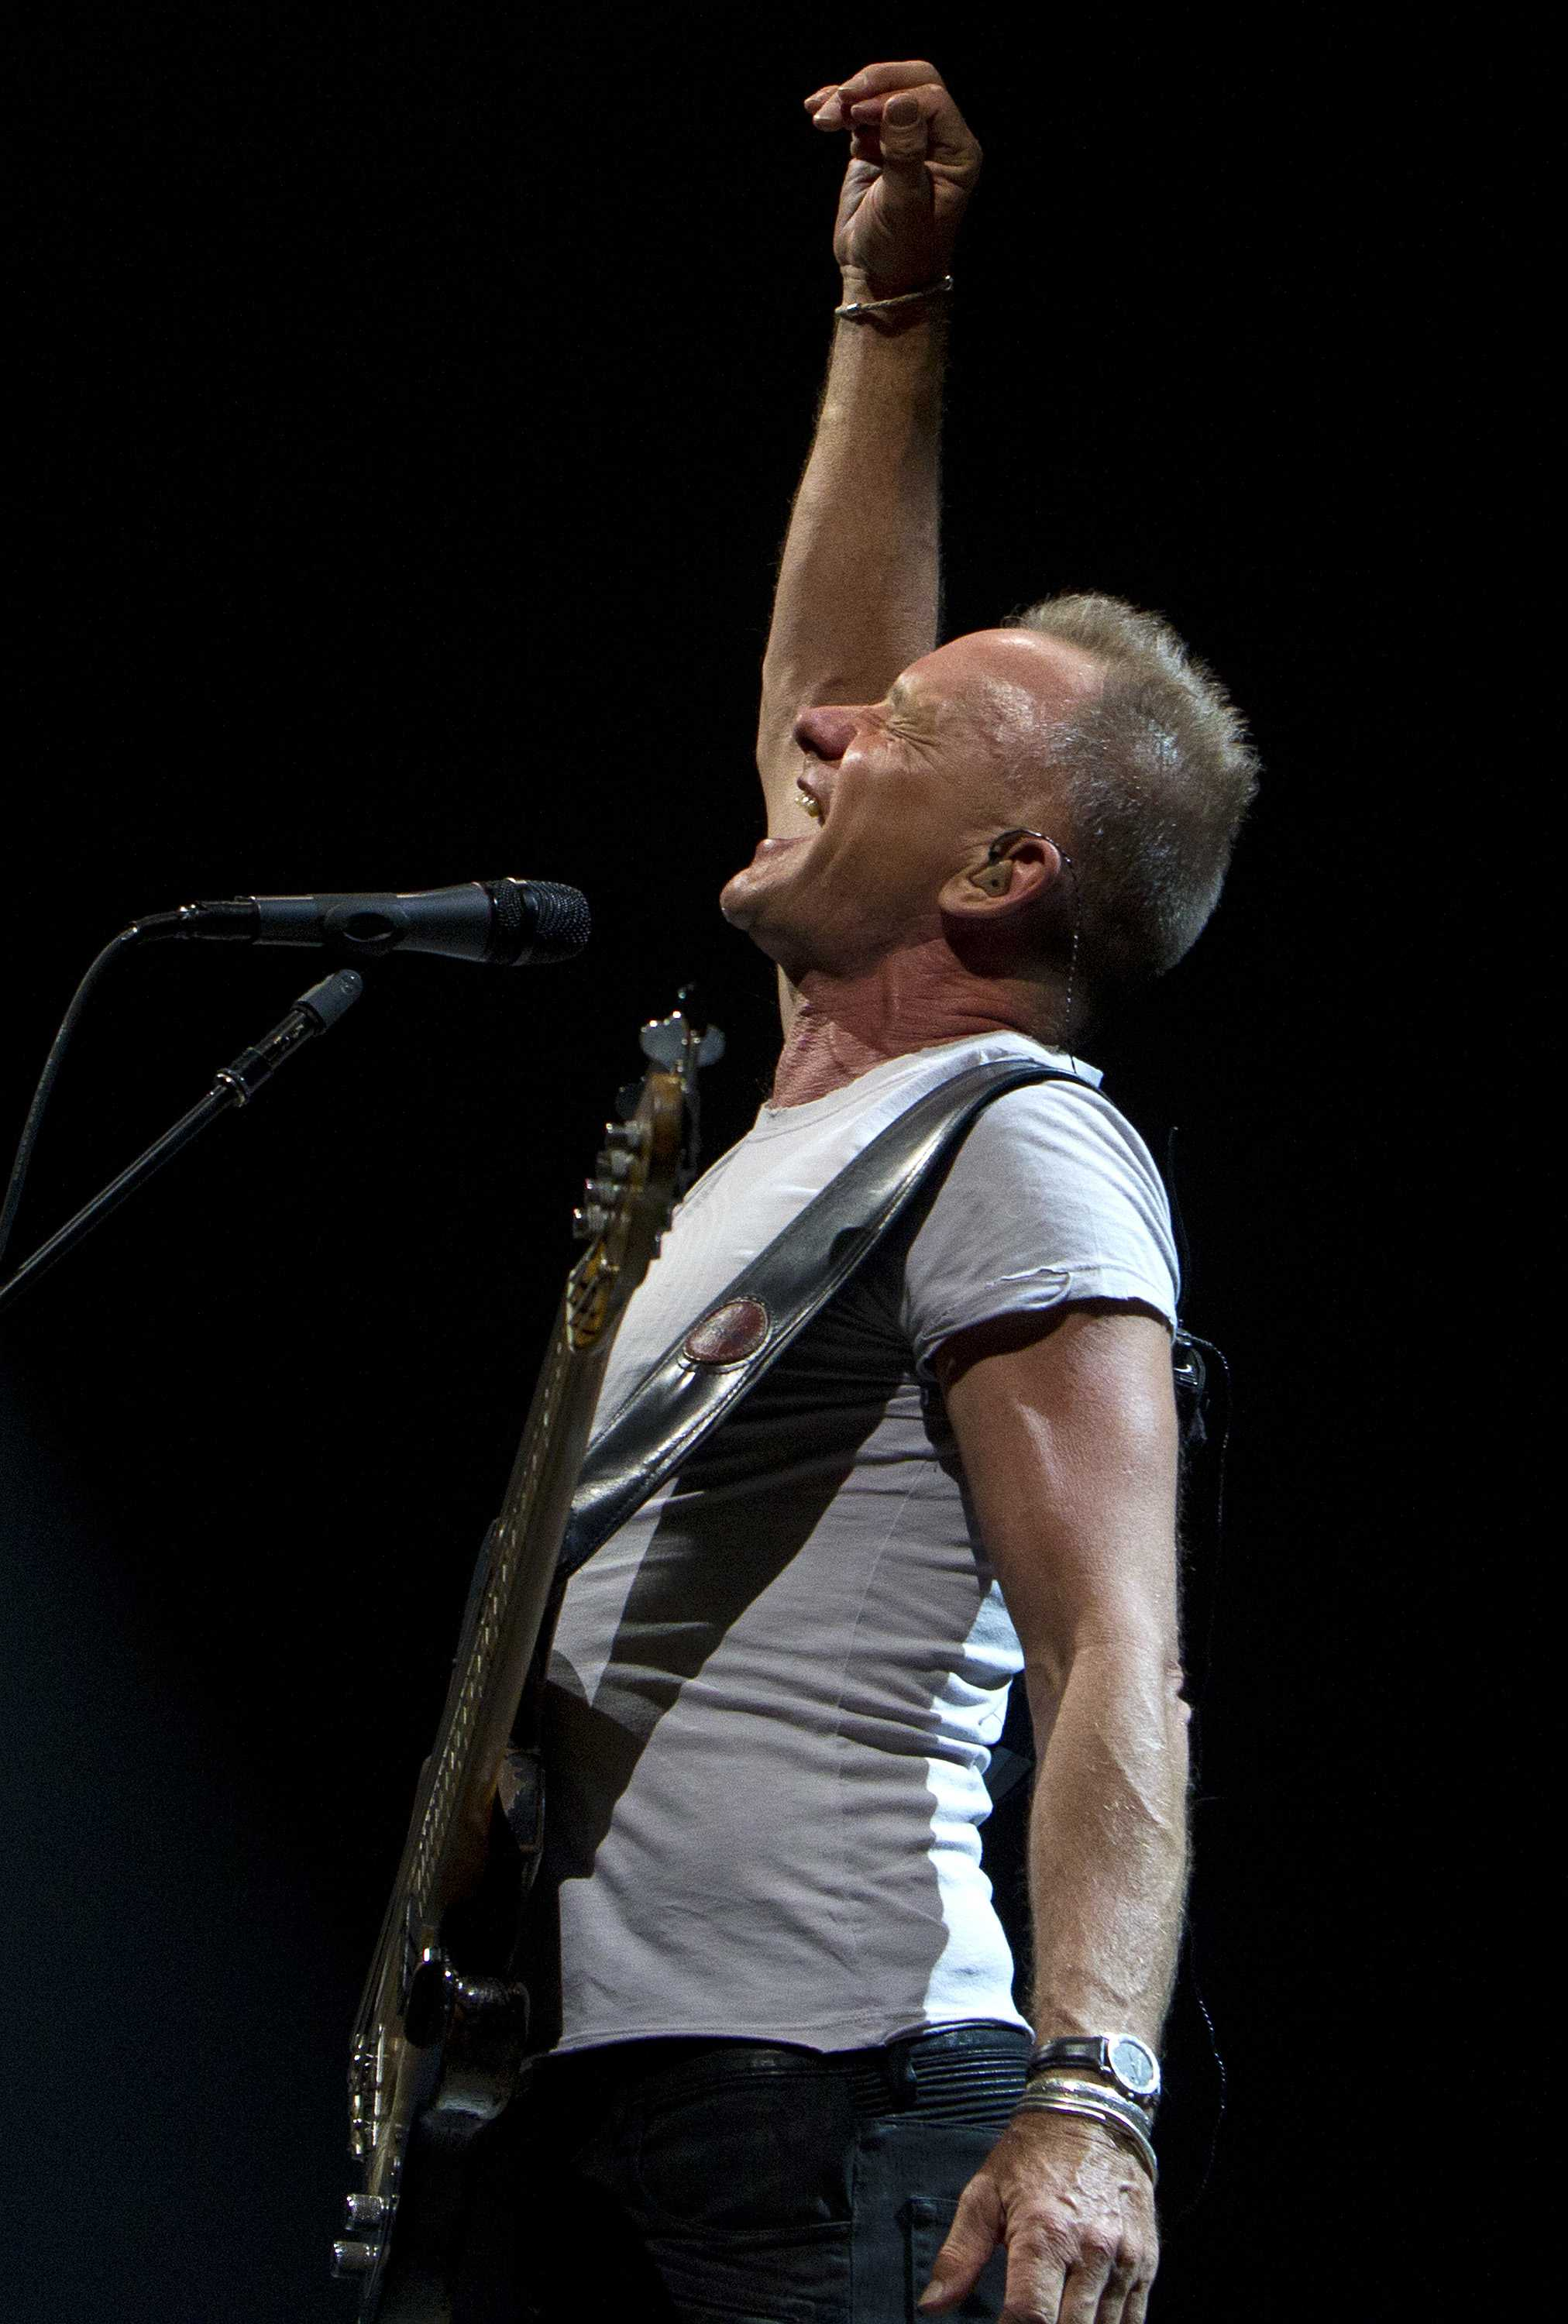 Sting enthusiastically sings into the mic with his hand in the air